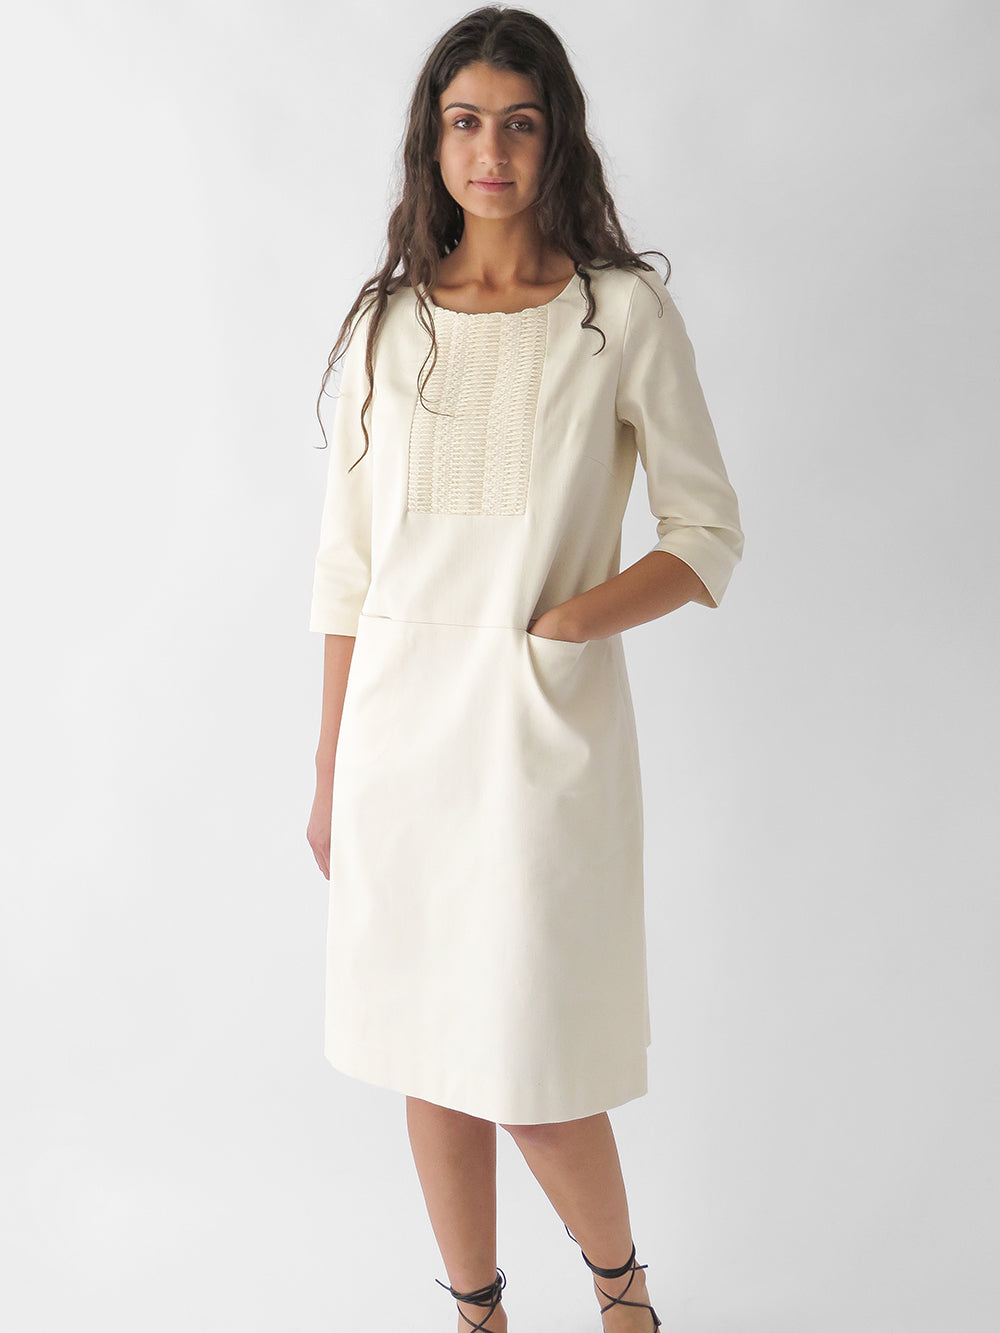 yvette dress in natural